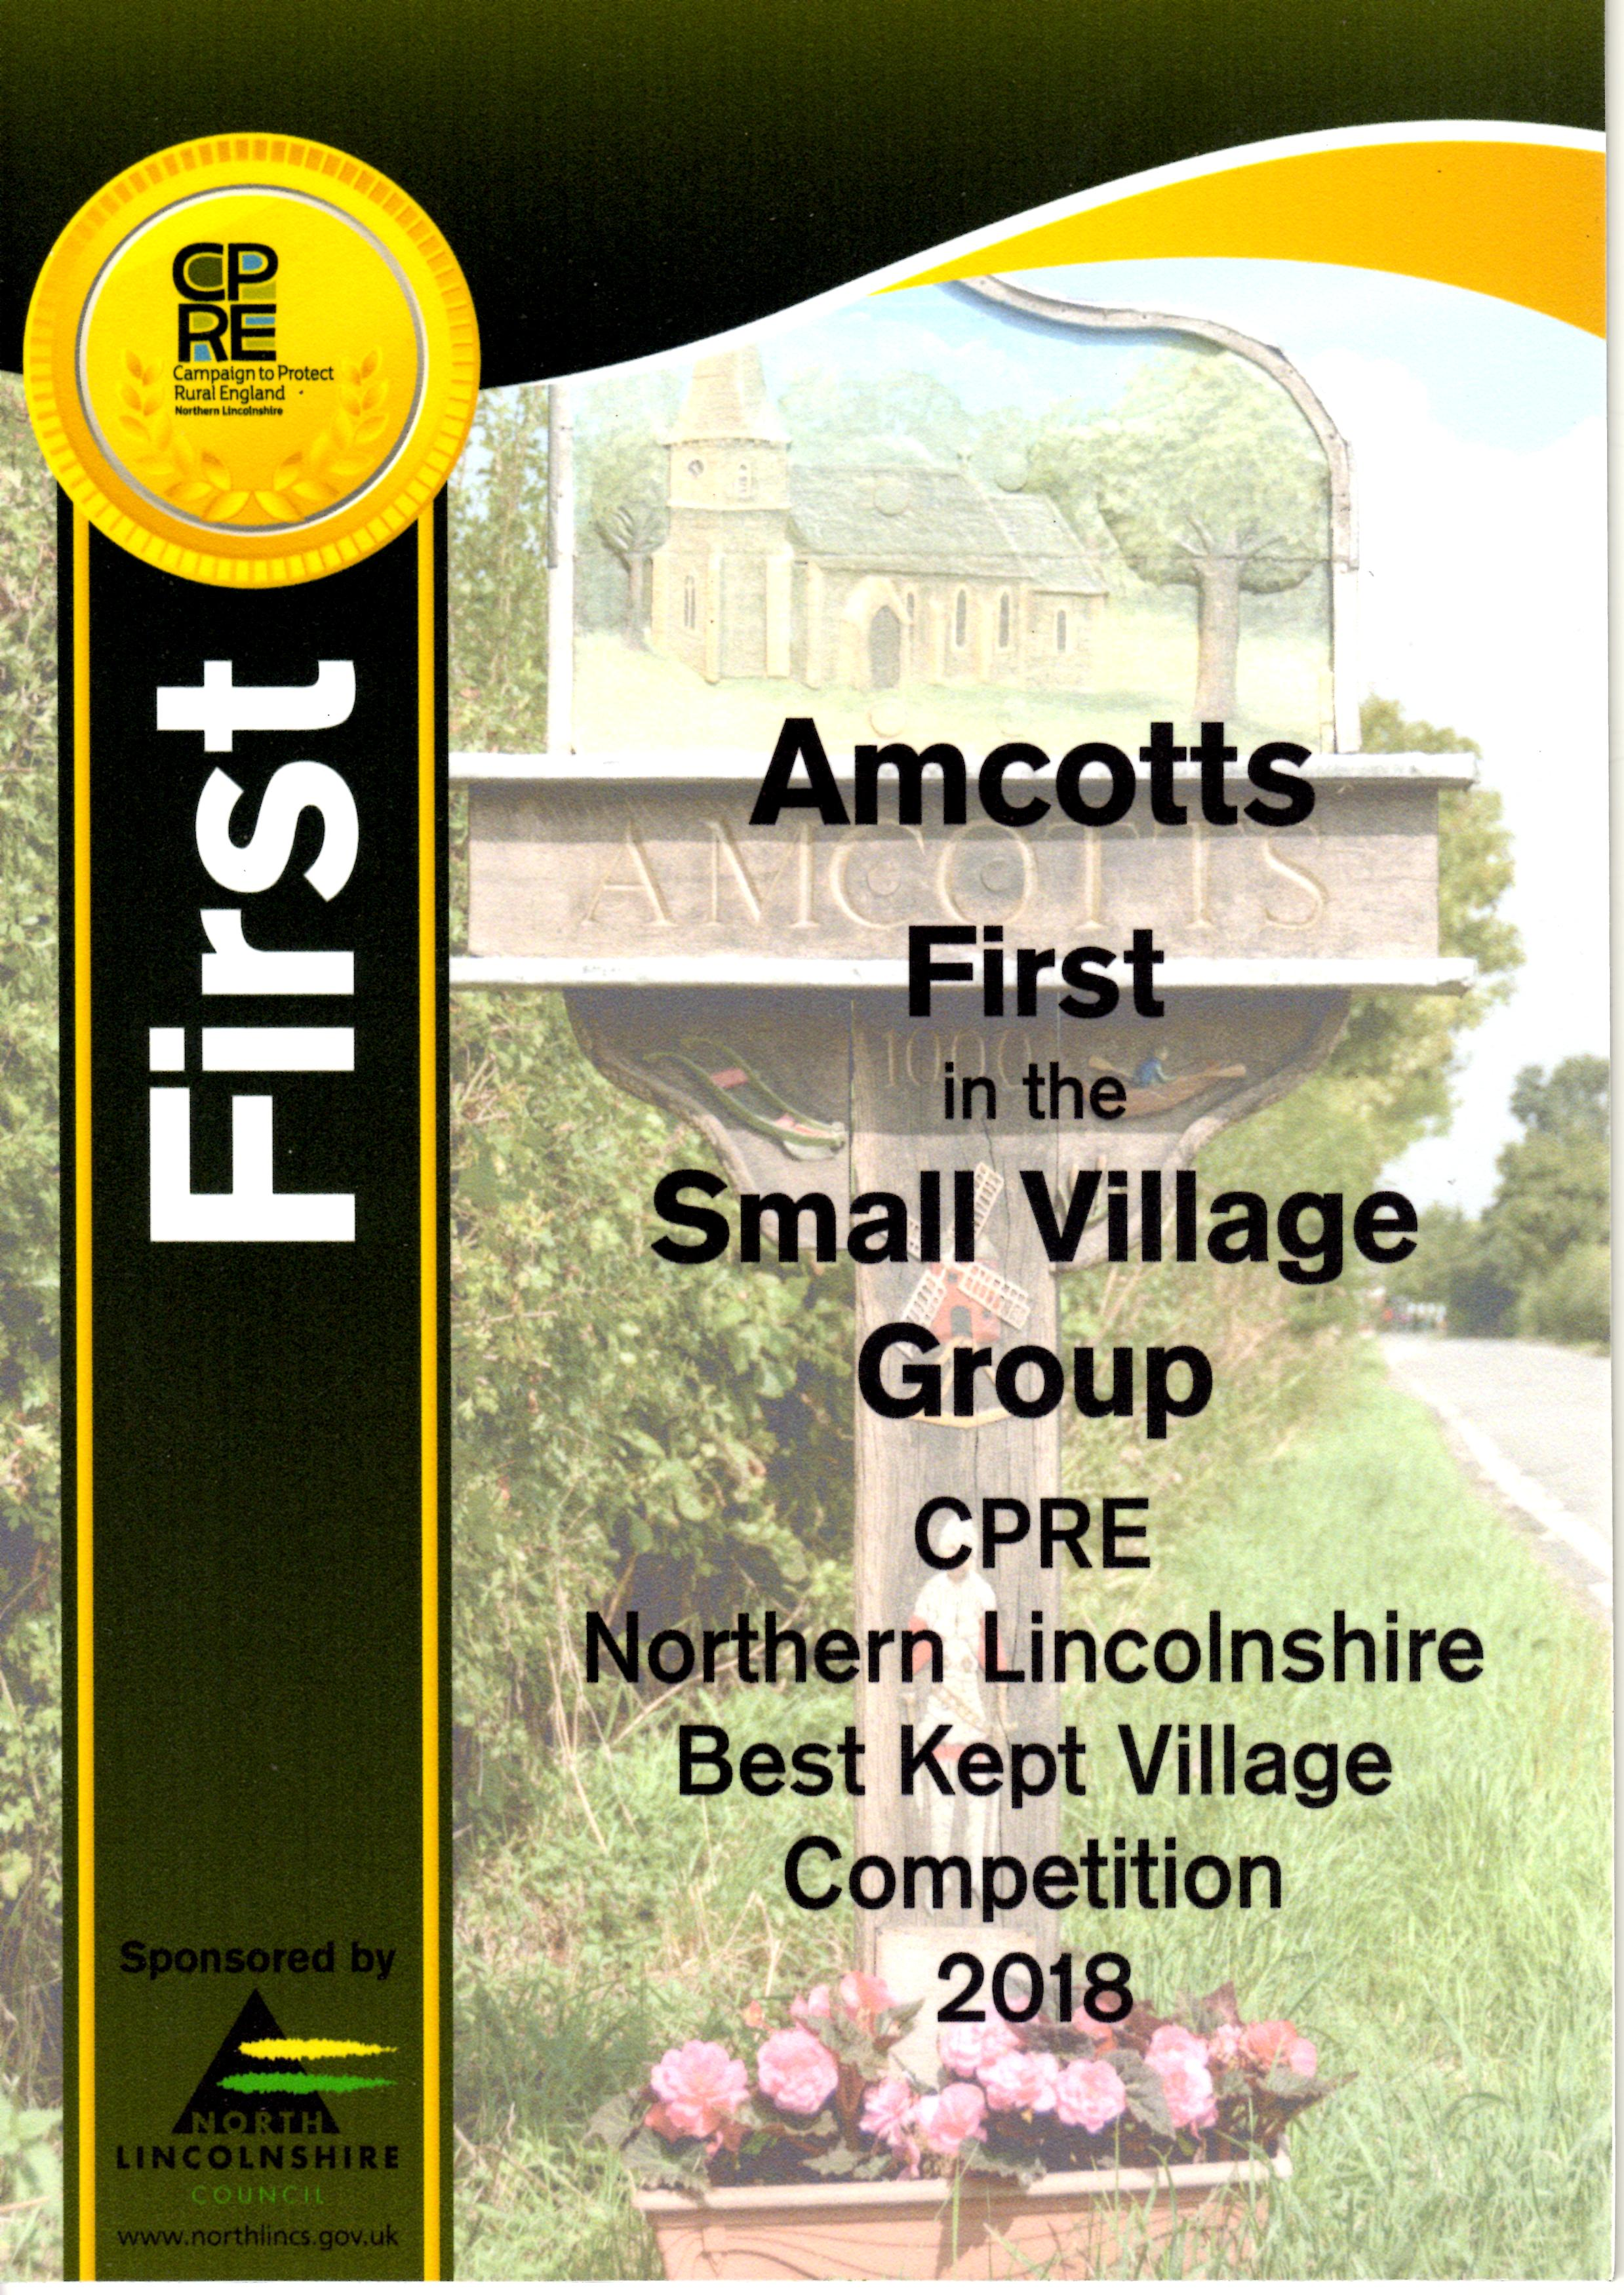 First in Small Village Group